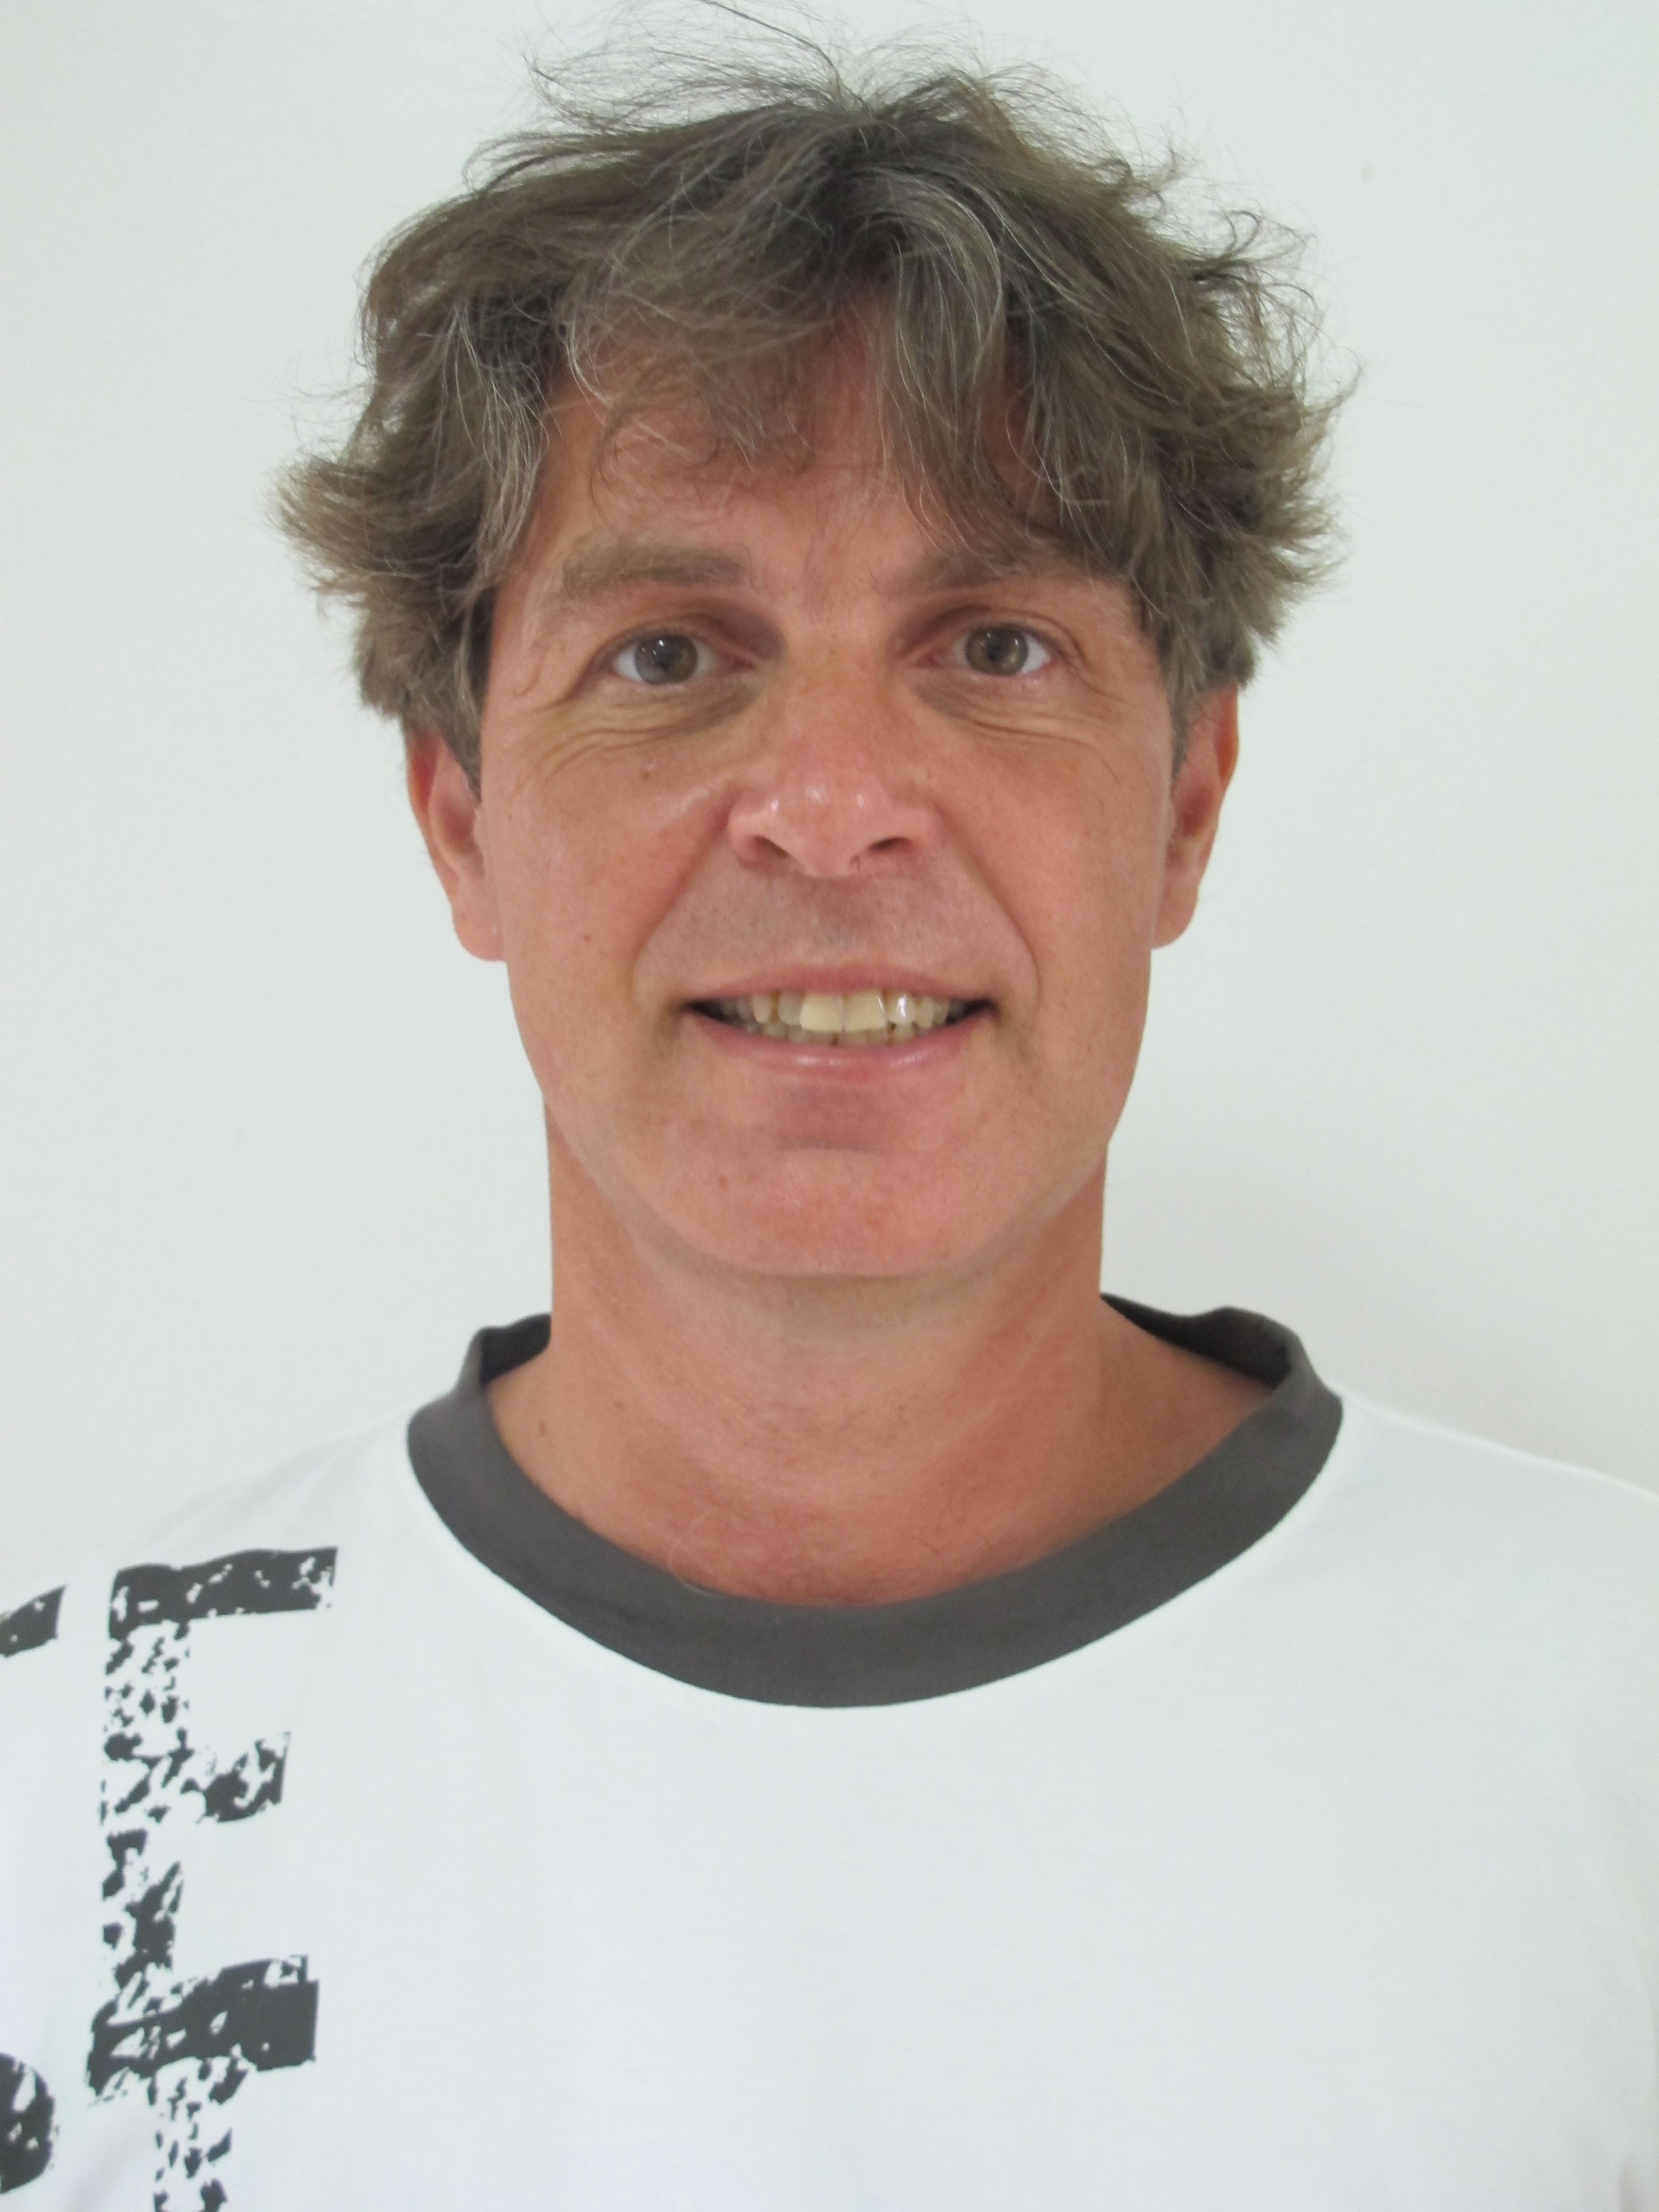 Lars Ibsen a new Enhanced Air Diver certified with Turtle Bay Dive Resort